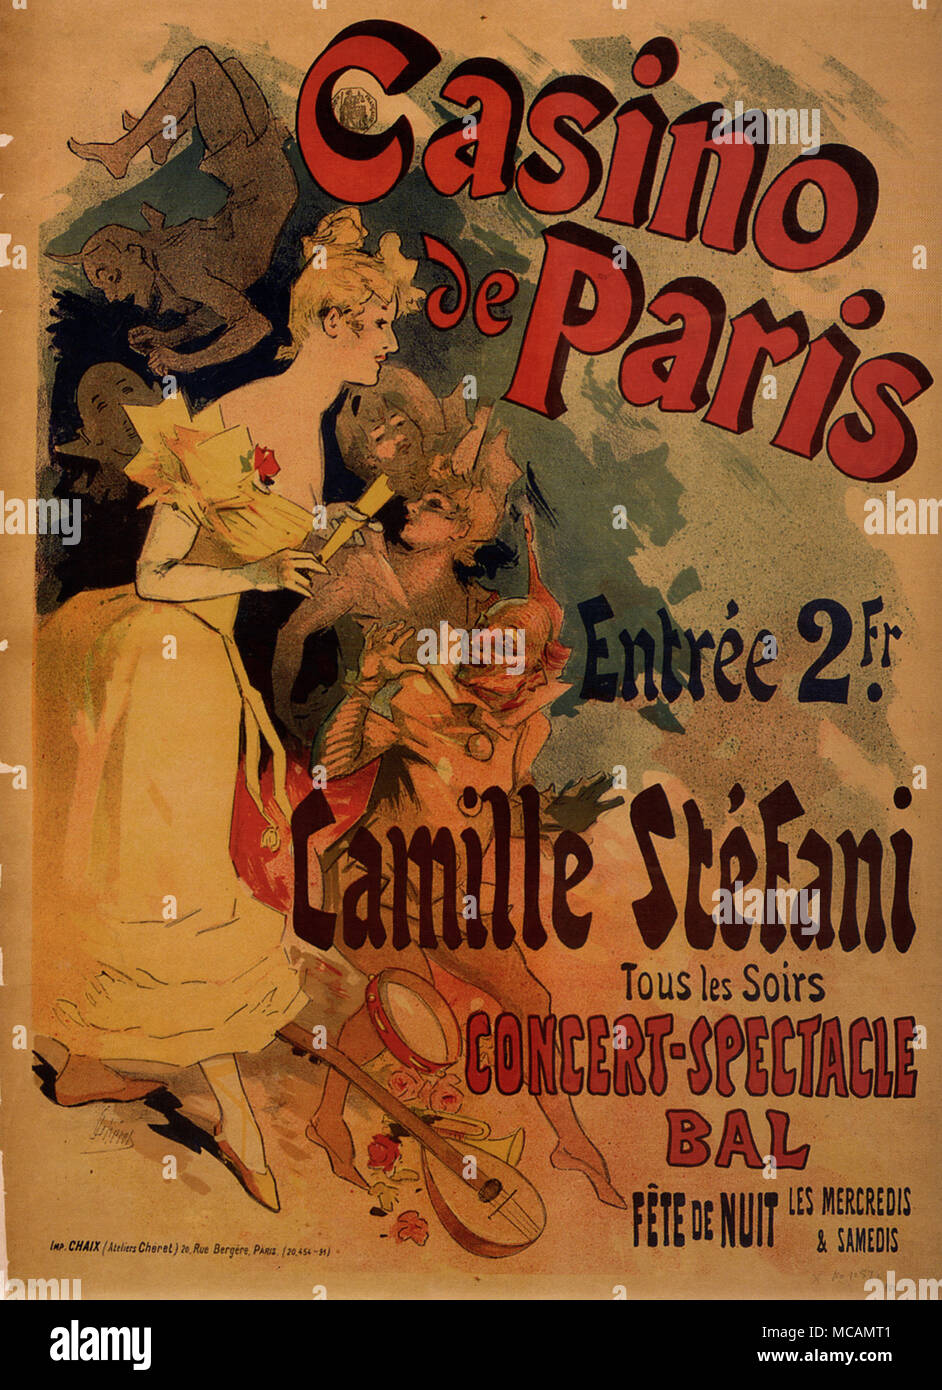 Casino de Paris poster by Jules Ch?ret (1836-1932) for Camille Stefani performing a concert spectacular. - Stock Image